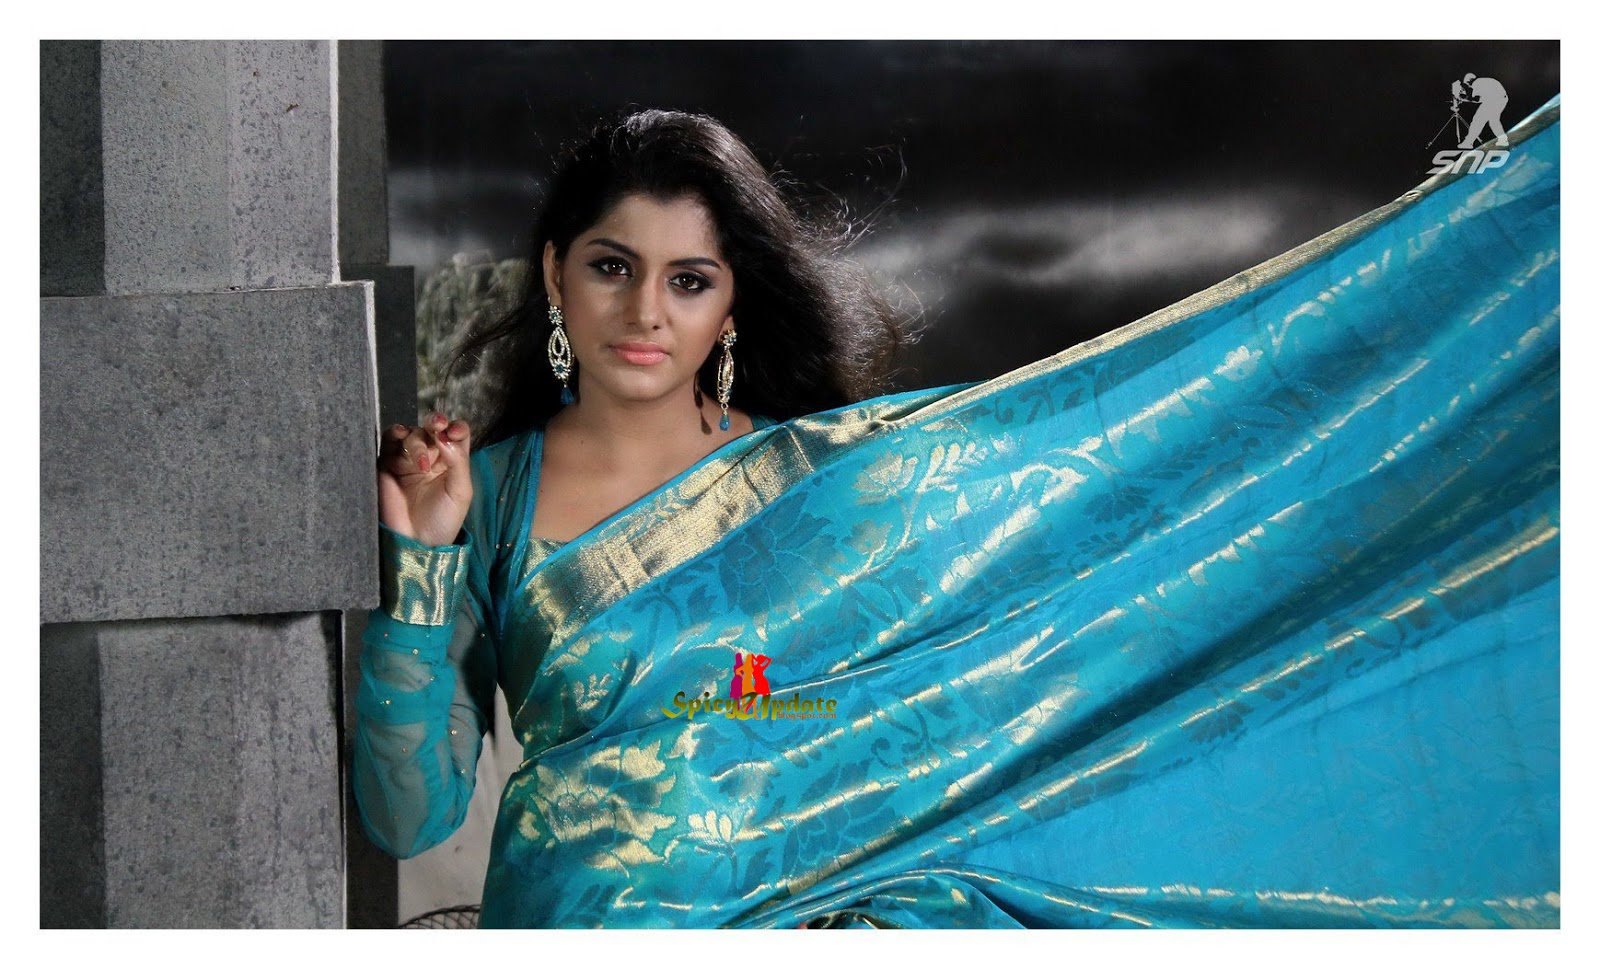 Dubai Gold And Diamonds Kavya Madhavan Latest Ad Hd: SPICY UPDATE: Meera Nandan Spicy Hot Cute PhotoShoot For